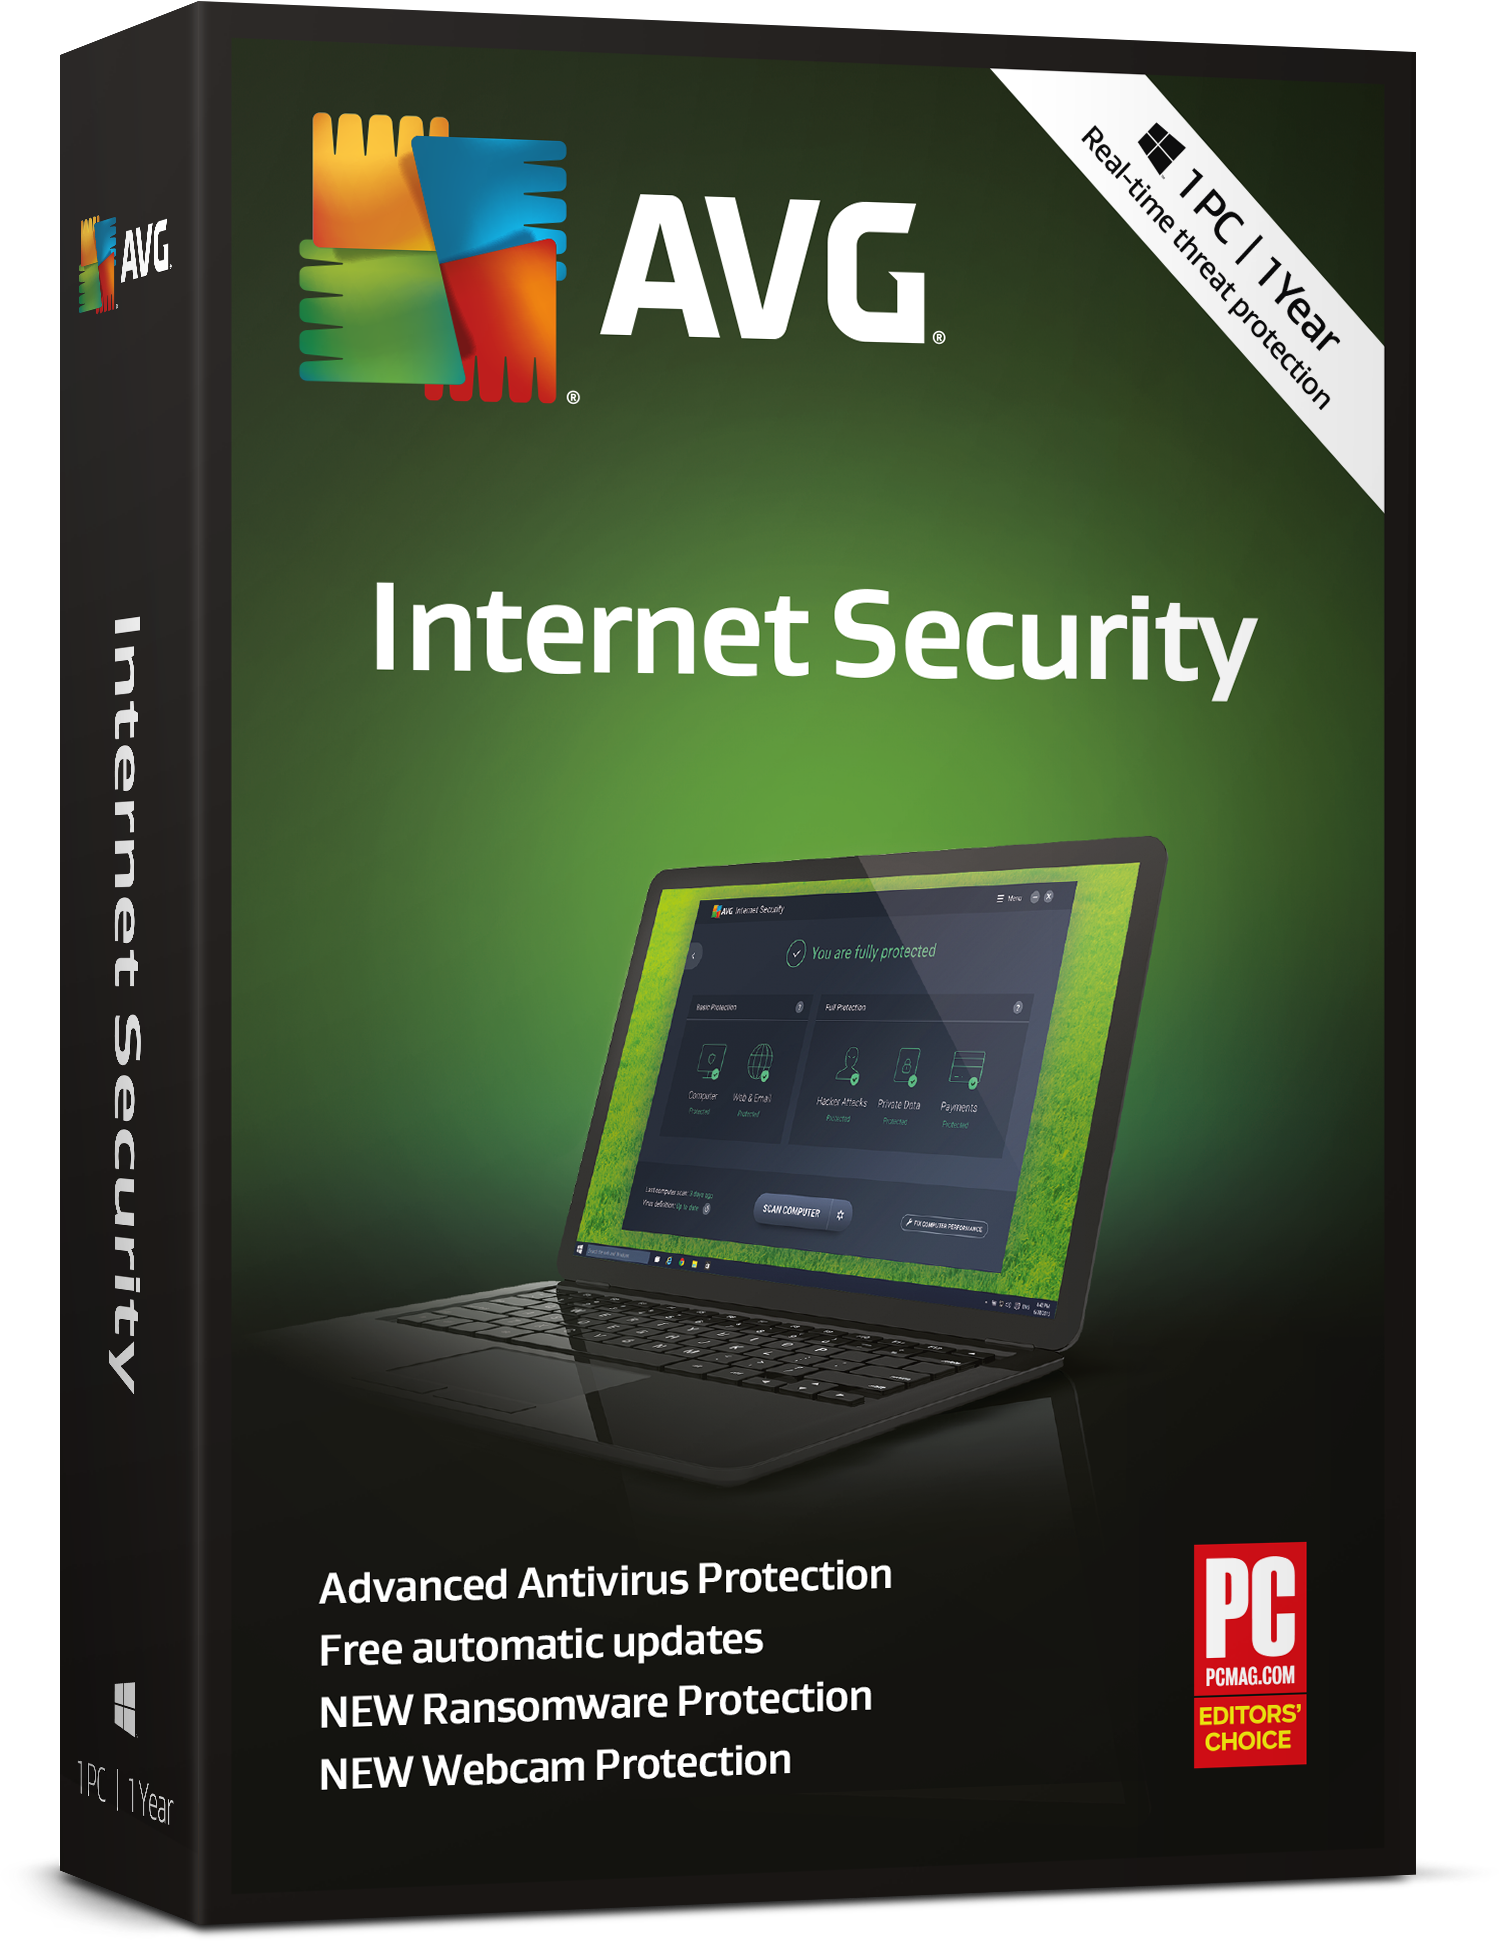 AVG Internet Security 2 Years License